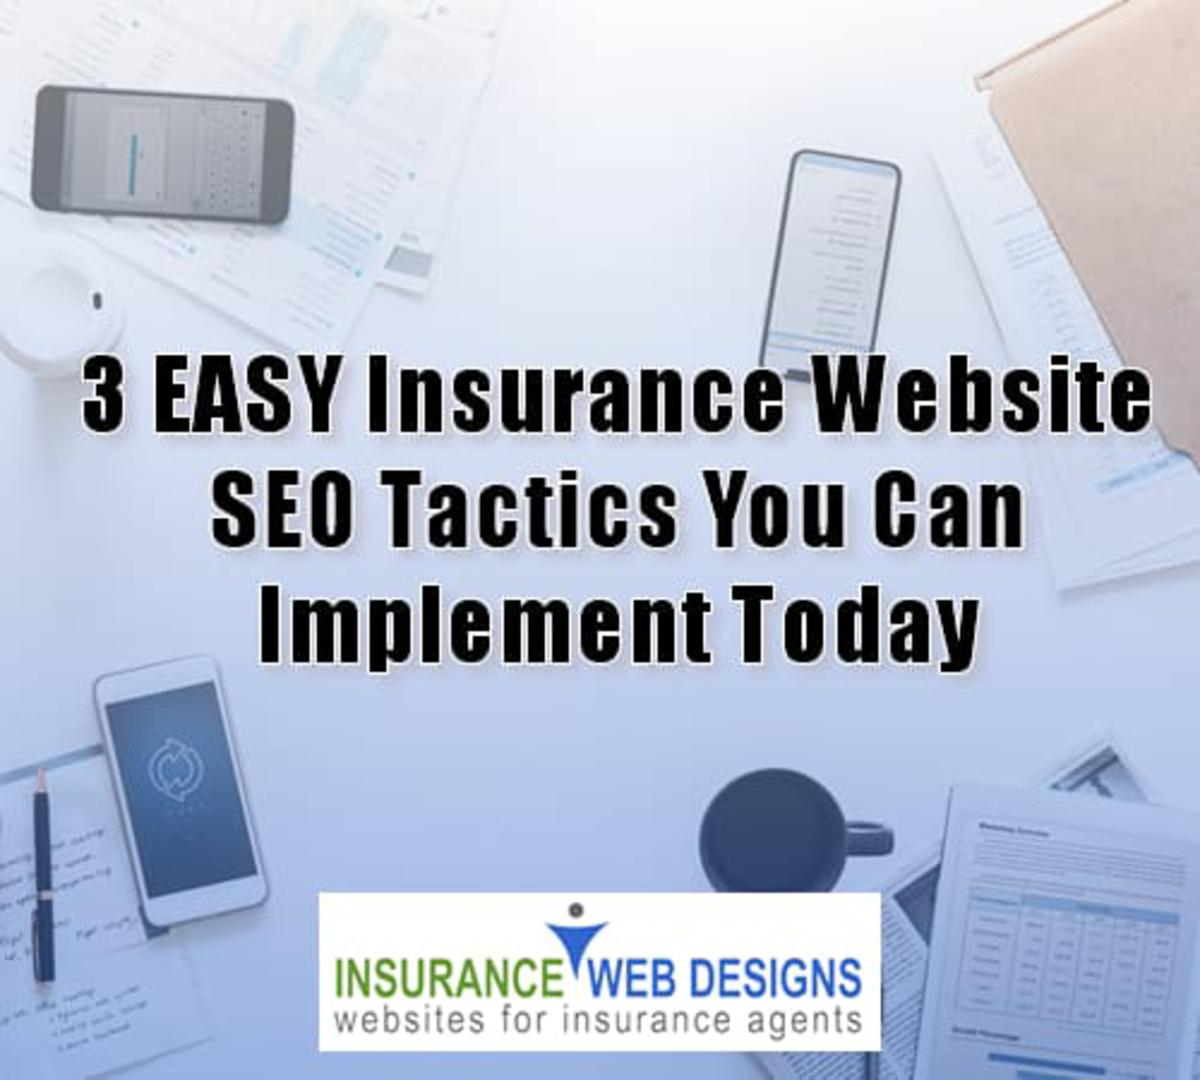 3 EASY Insurance Website SEO Tactics You Can Implement Today